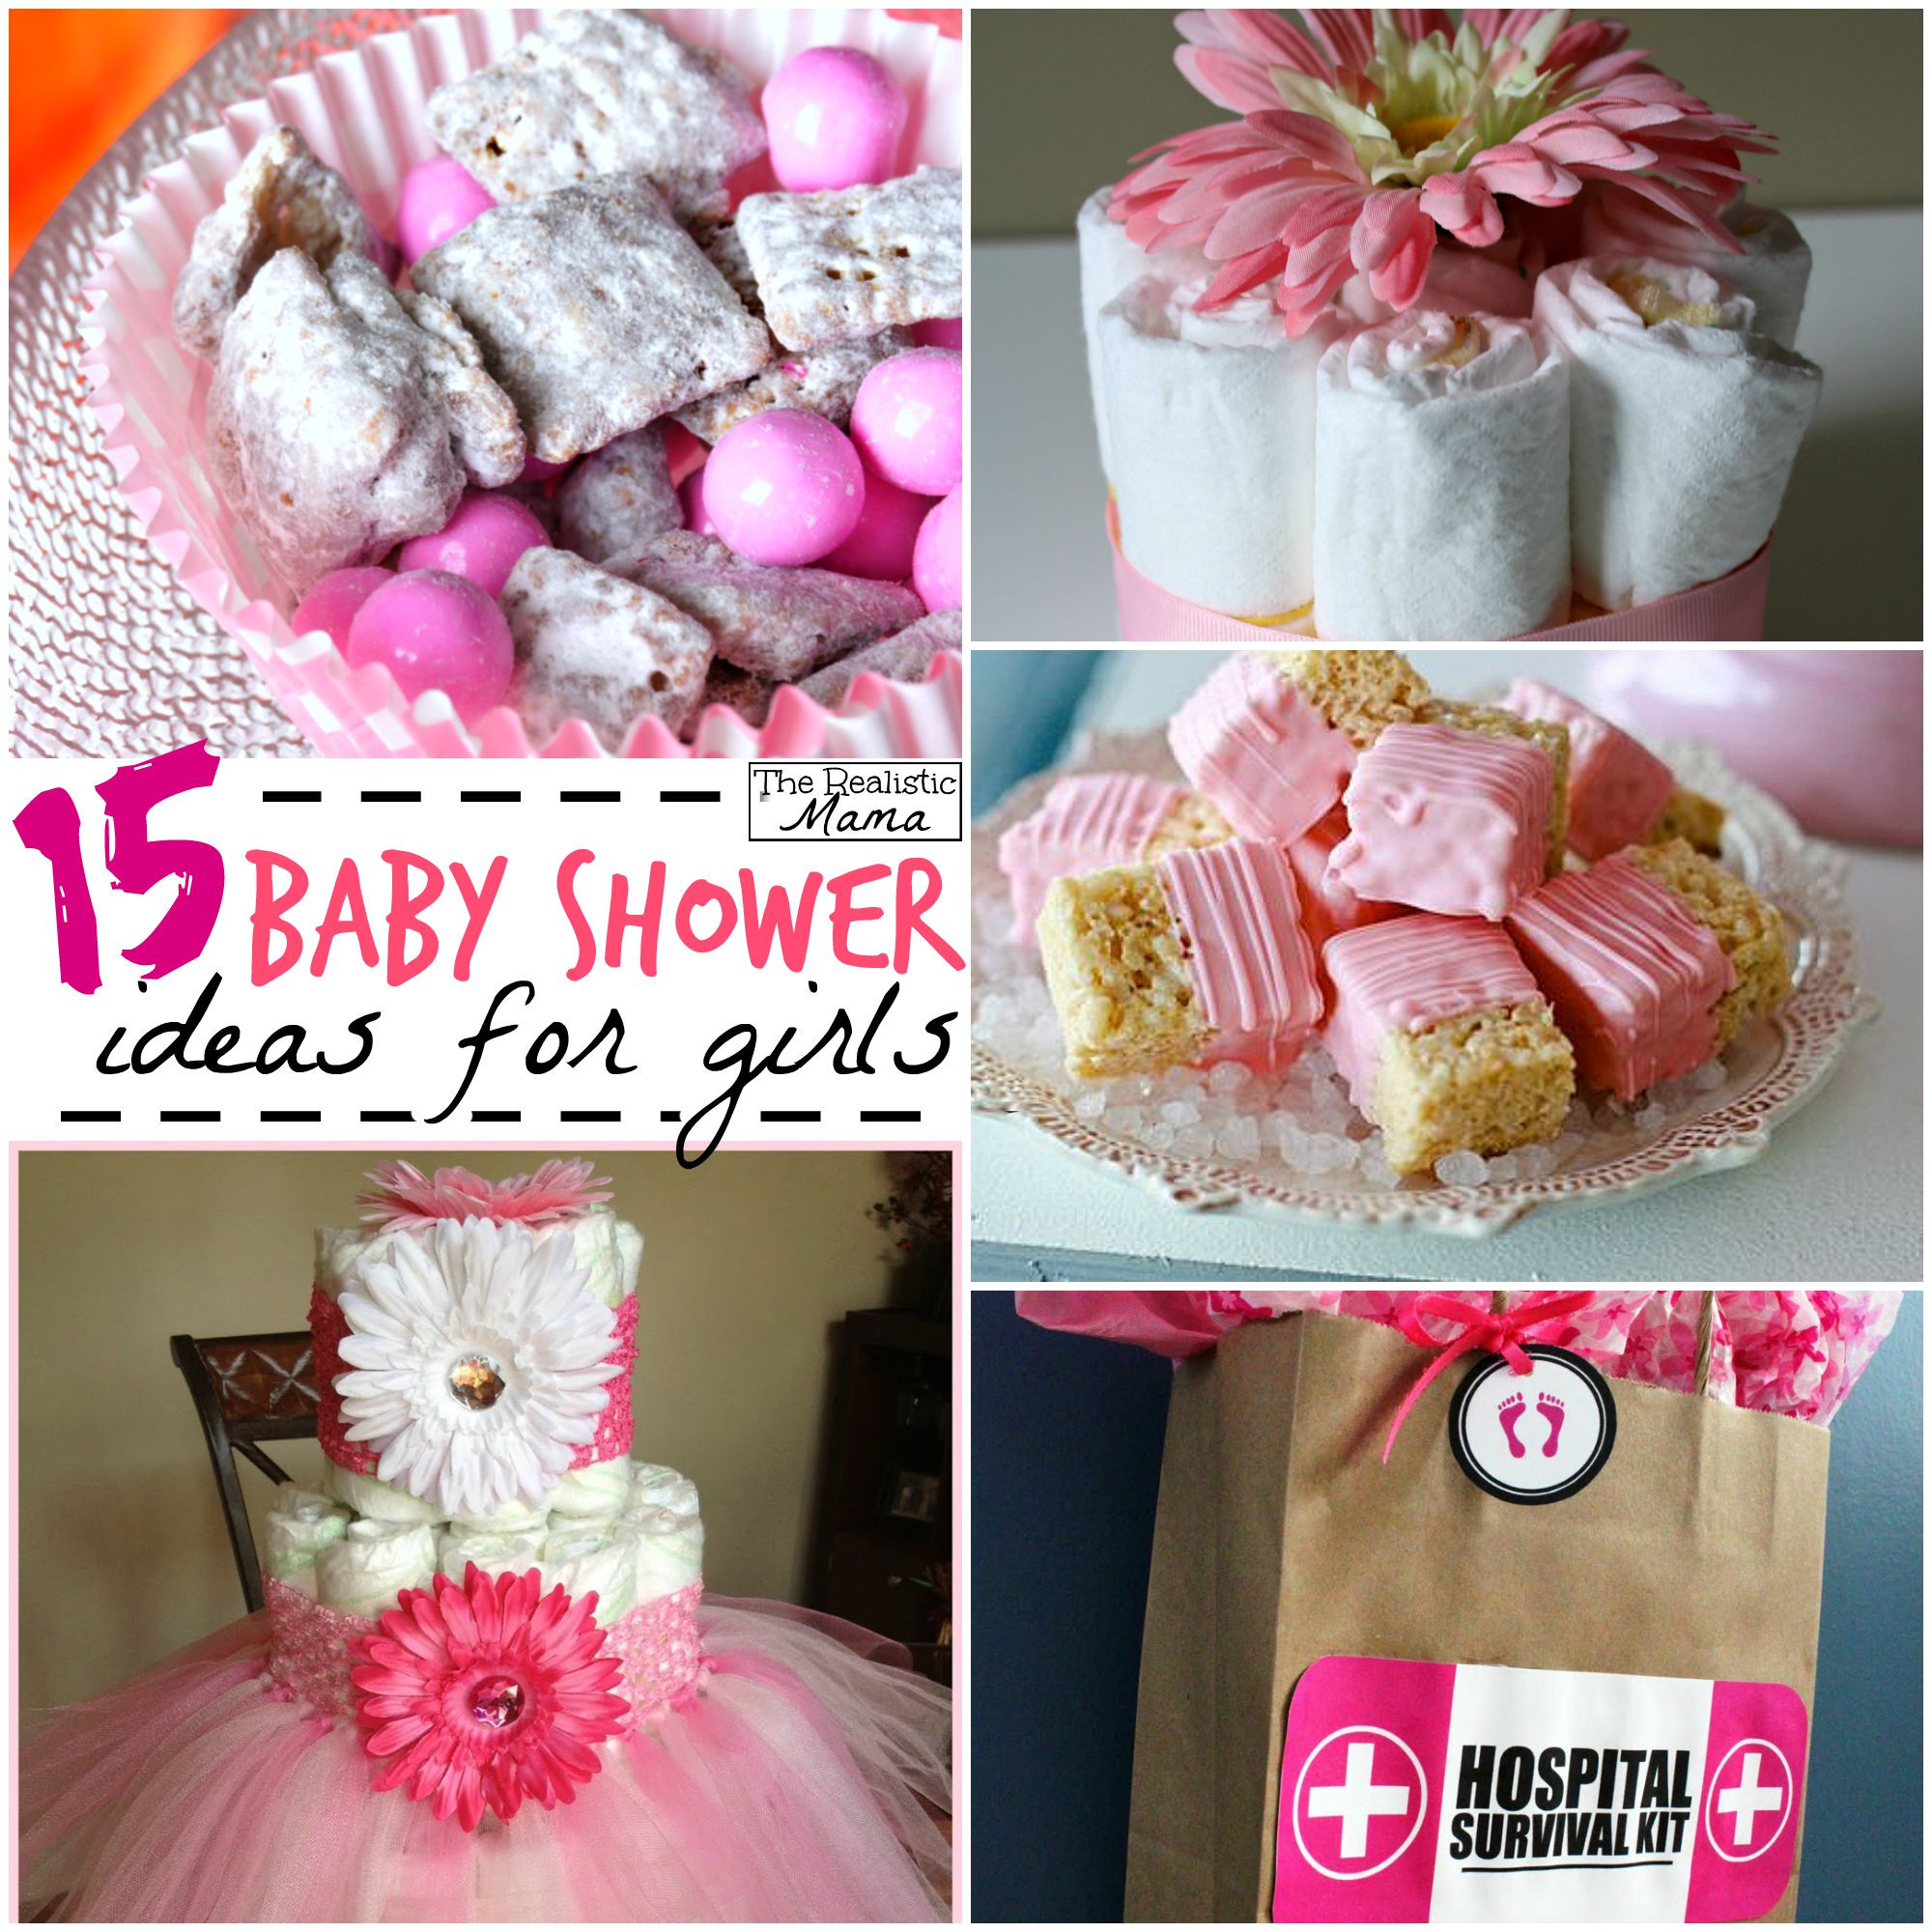 Best ideas about Girl Baby Shower Gift Ideas . Save or Pin 15 Baby Shower Ideas for Girls The Realistic Mama Now.